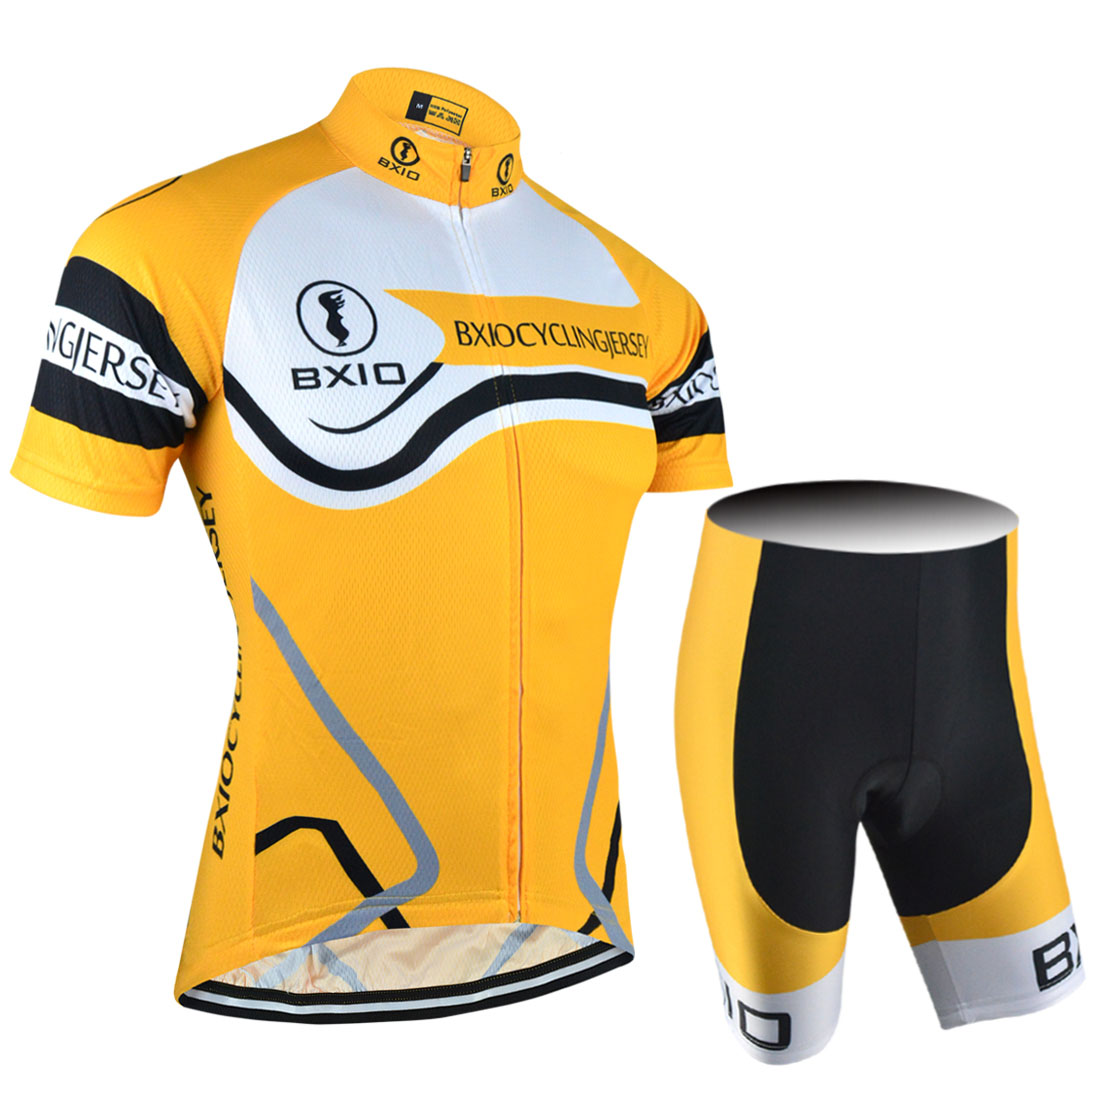 Bxio Orange Bright Cycling Jerseys Can Be Choose Bibs Or ...